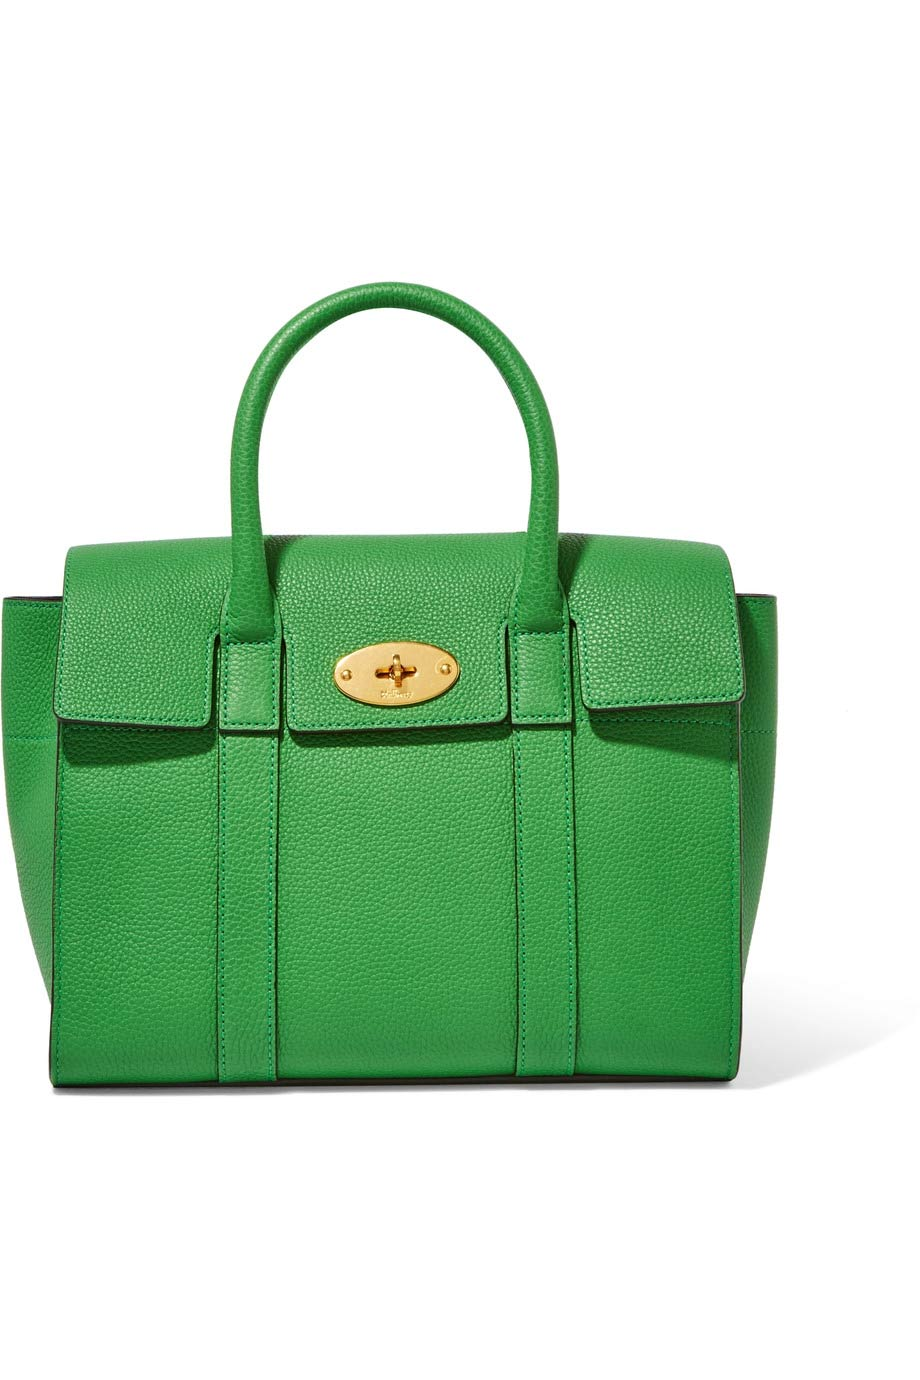 The Bayswater small textured leather tote, Mulberry